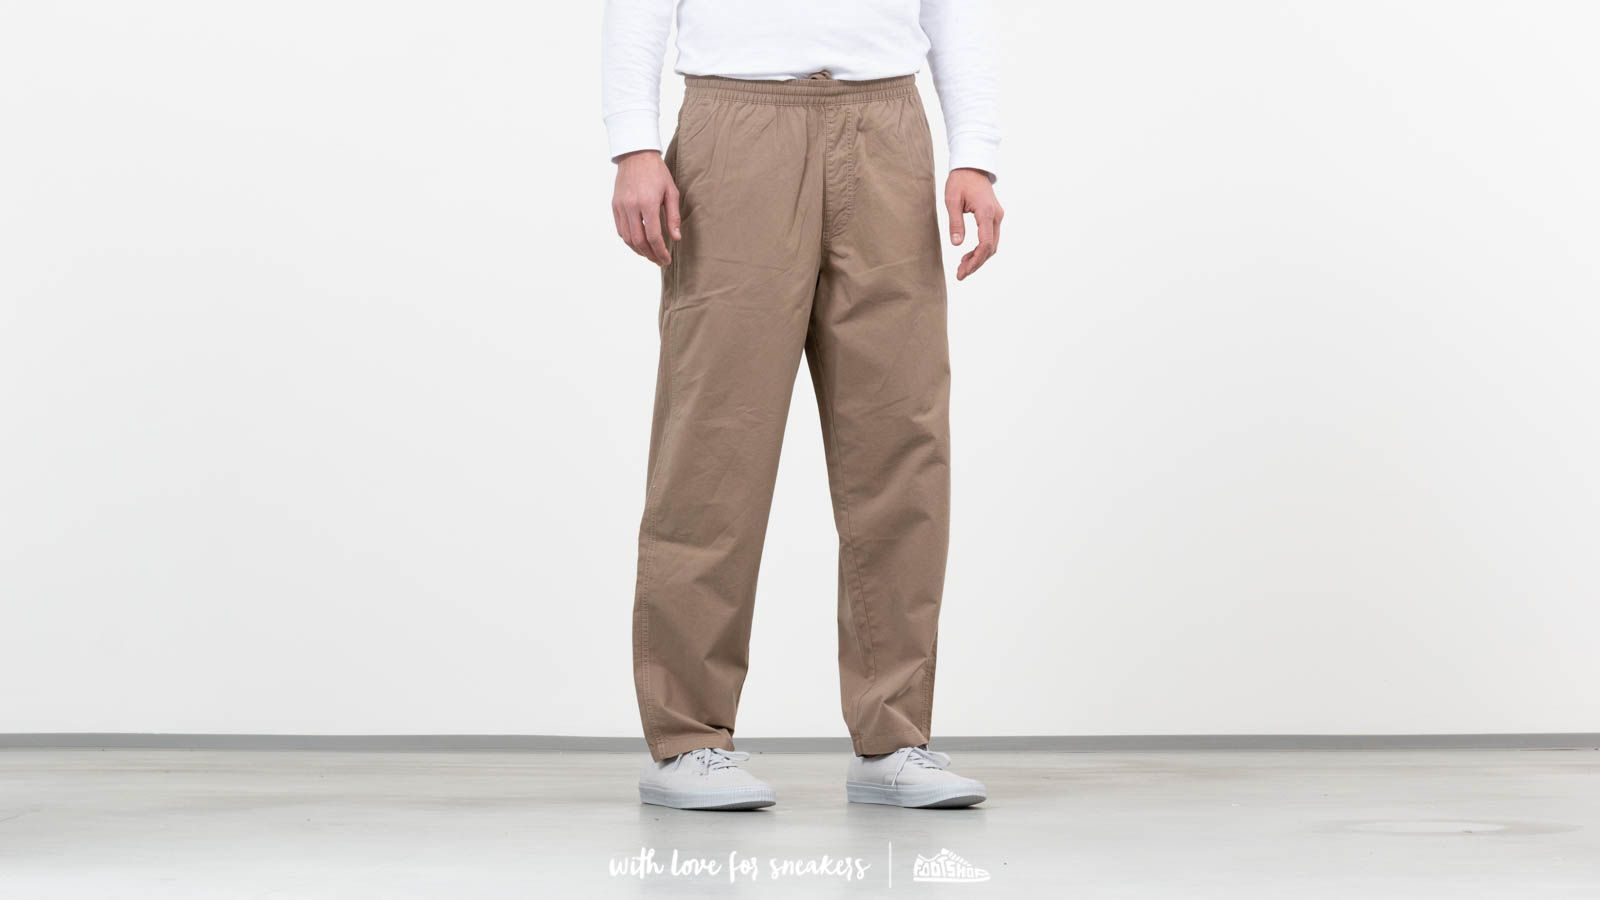 Pants and jeans Vans Embarcadero Pants Military Khaki